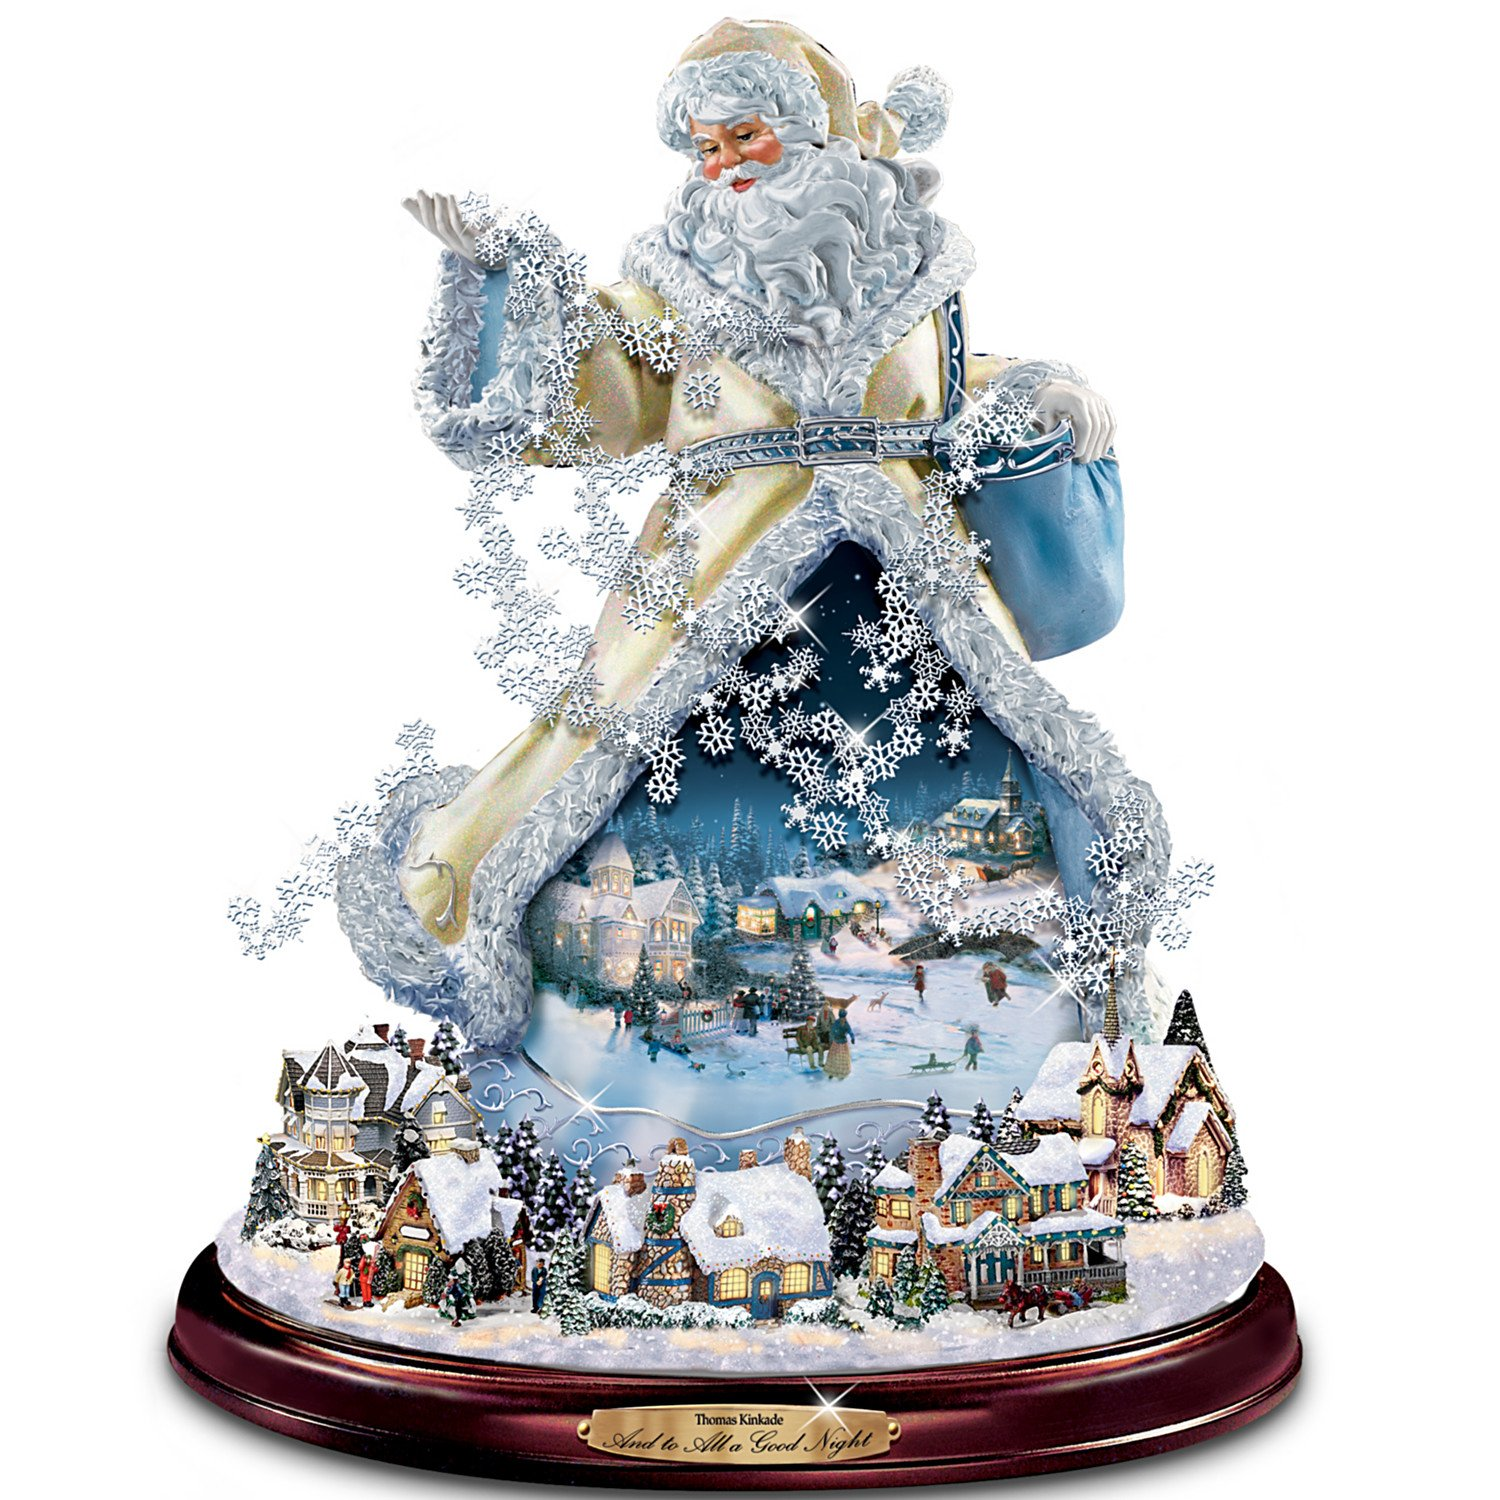 Image of Gorgeous Lighted Musical Thomas Kinkade Santa Claus Christmas Figurine with Village Base